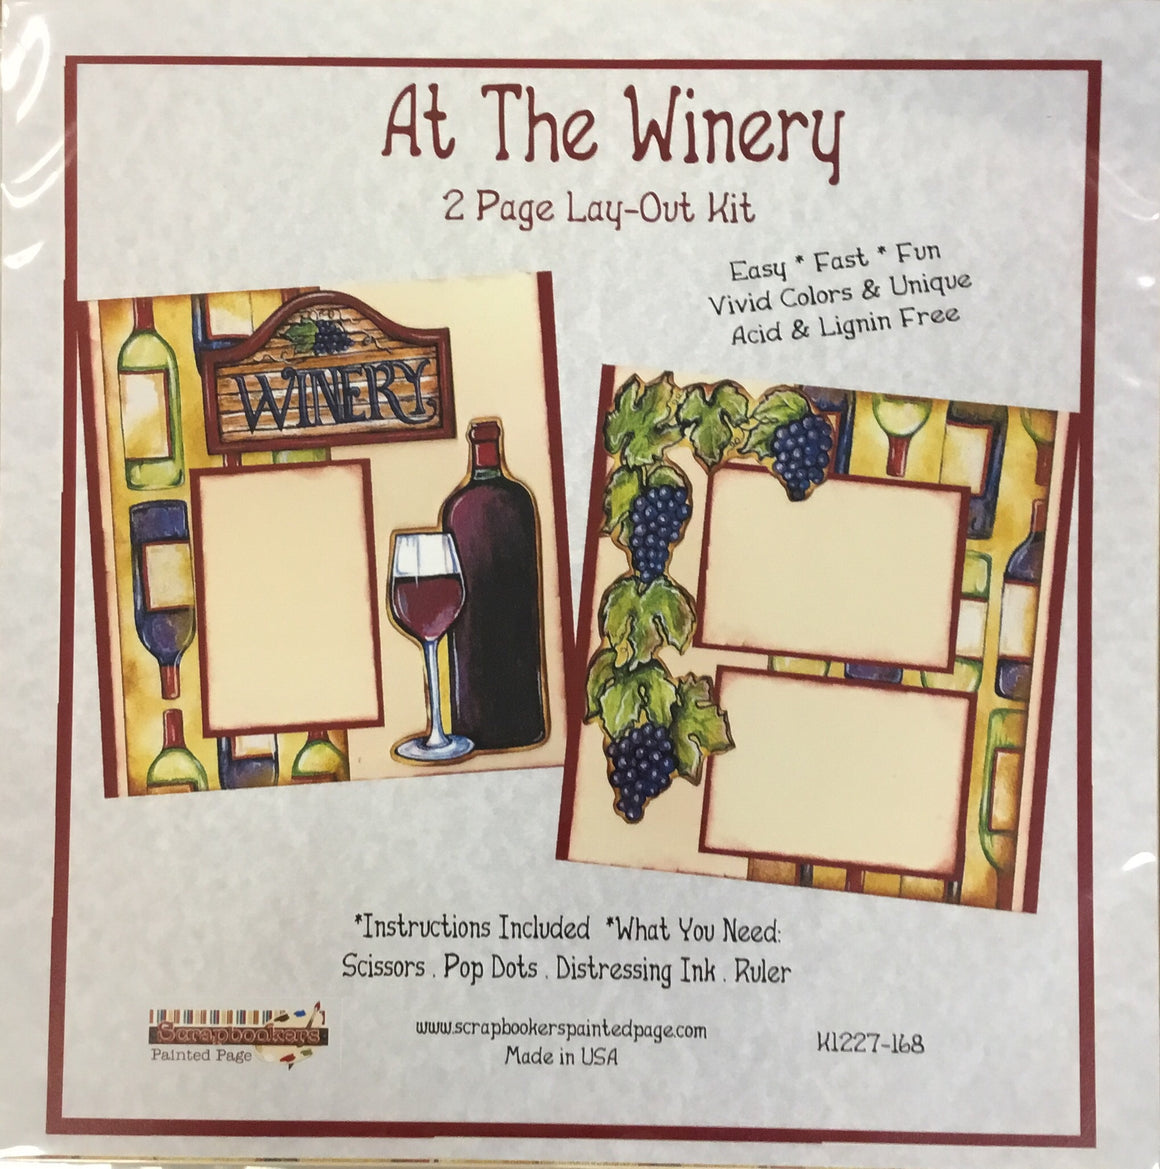 12x12 2 page layout kit At the Winery